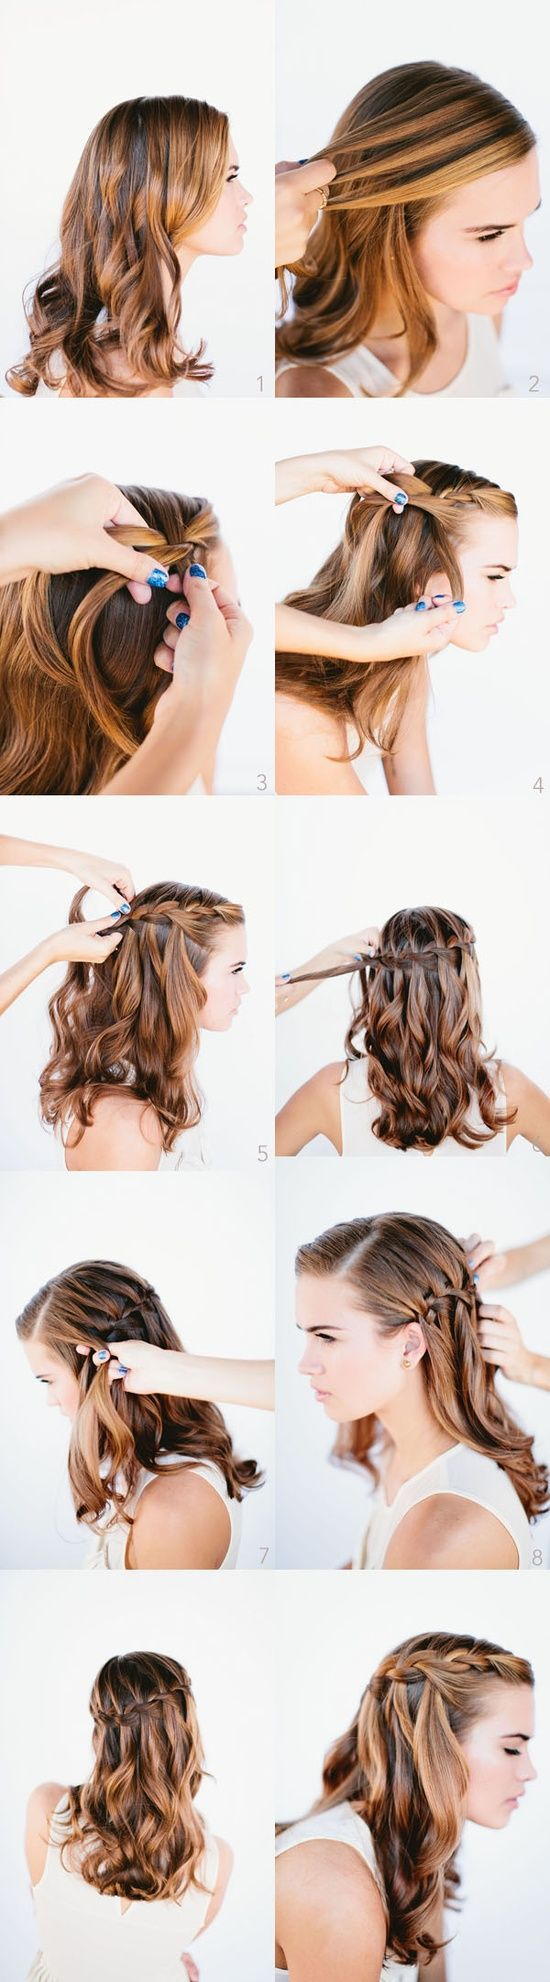 How to do a Waterfall braid #hairstyle? #Hair #Beauty